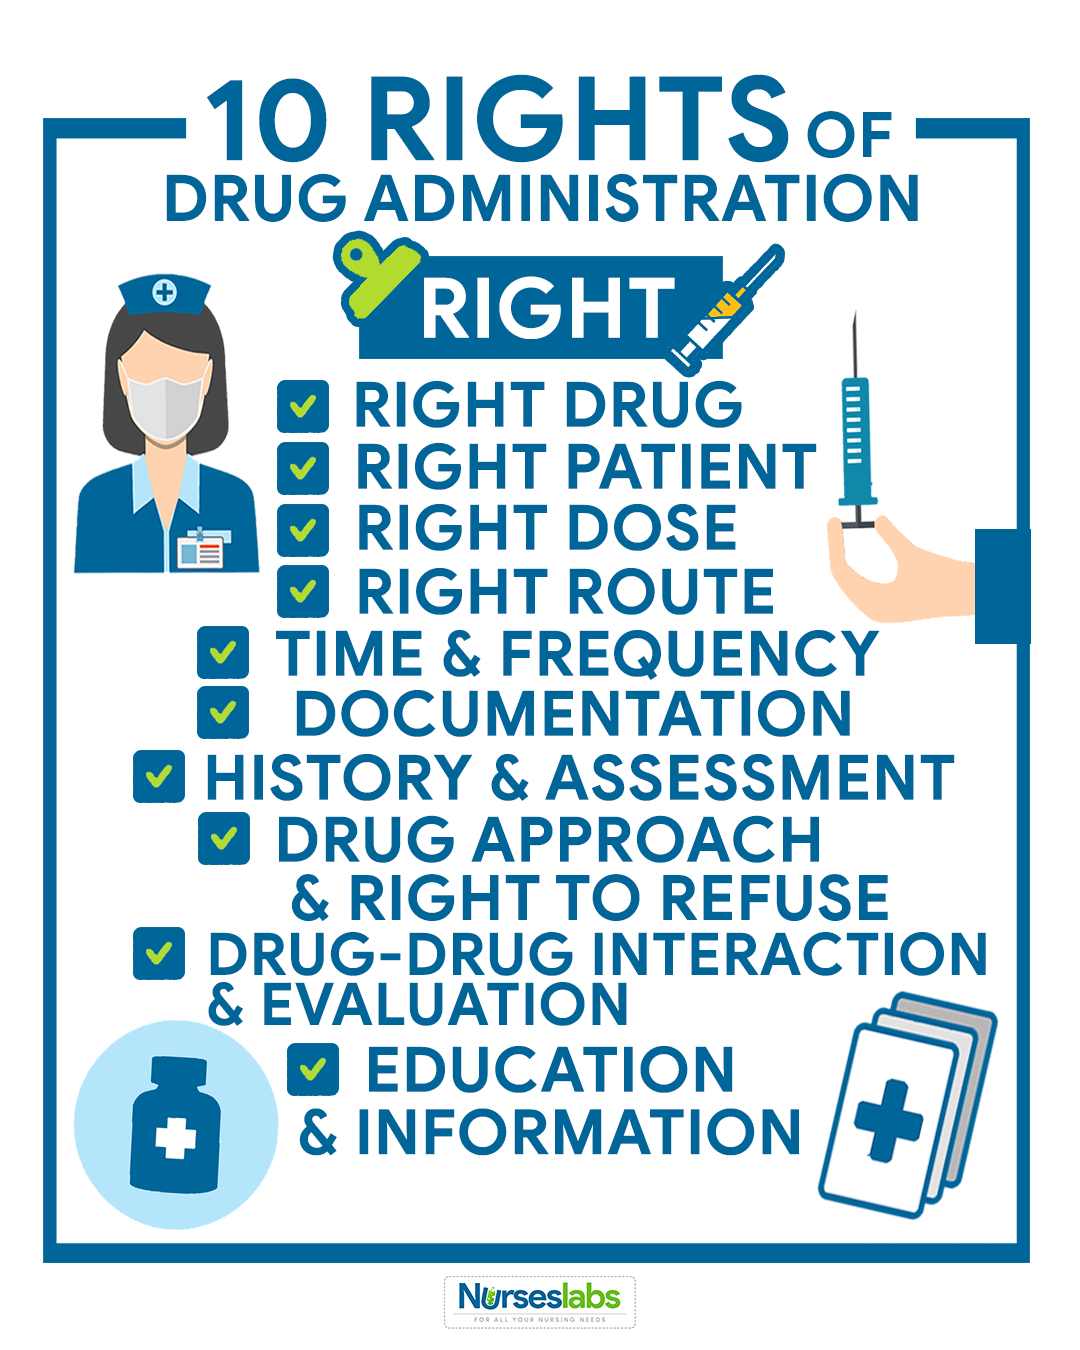 The 10 Rights Of Drug Administration